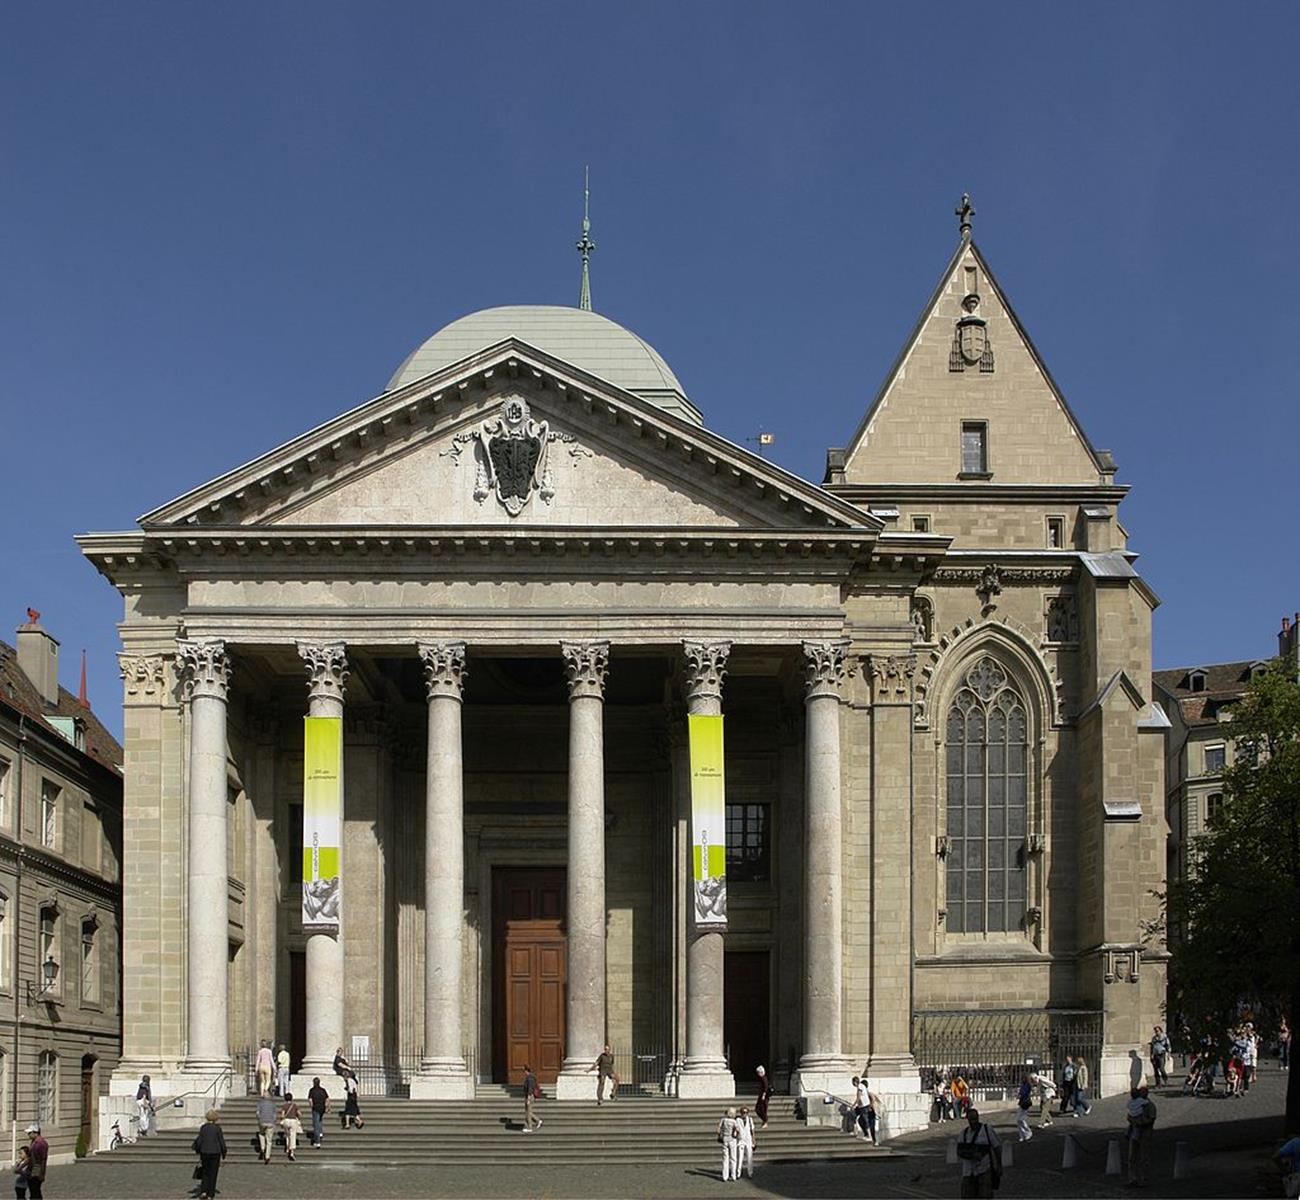 St. Pierre Cathedral in Geneva where John Calvin preached